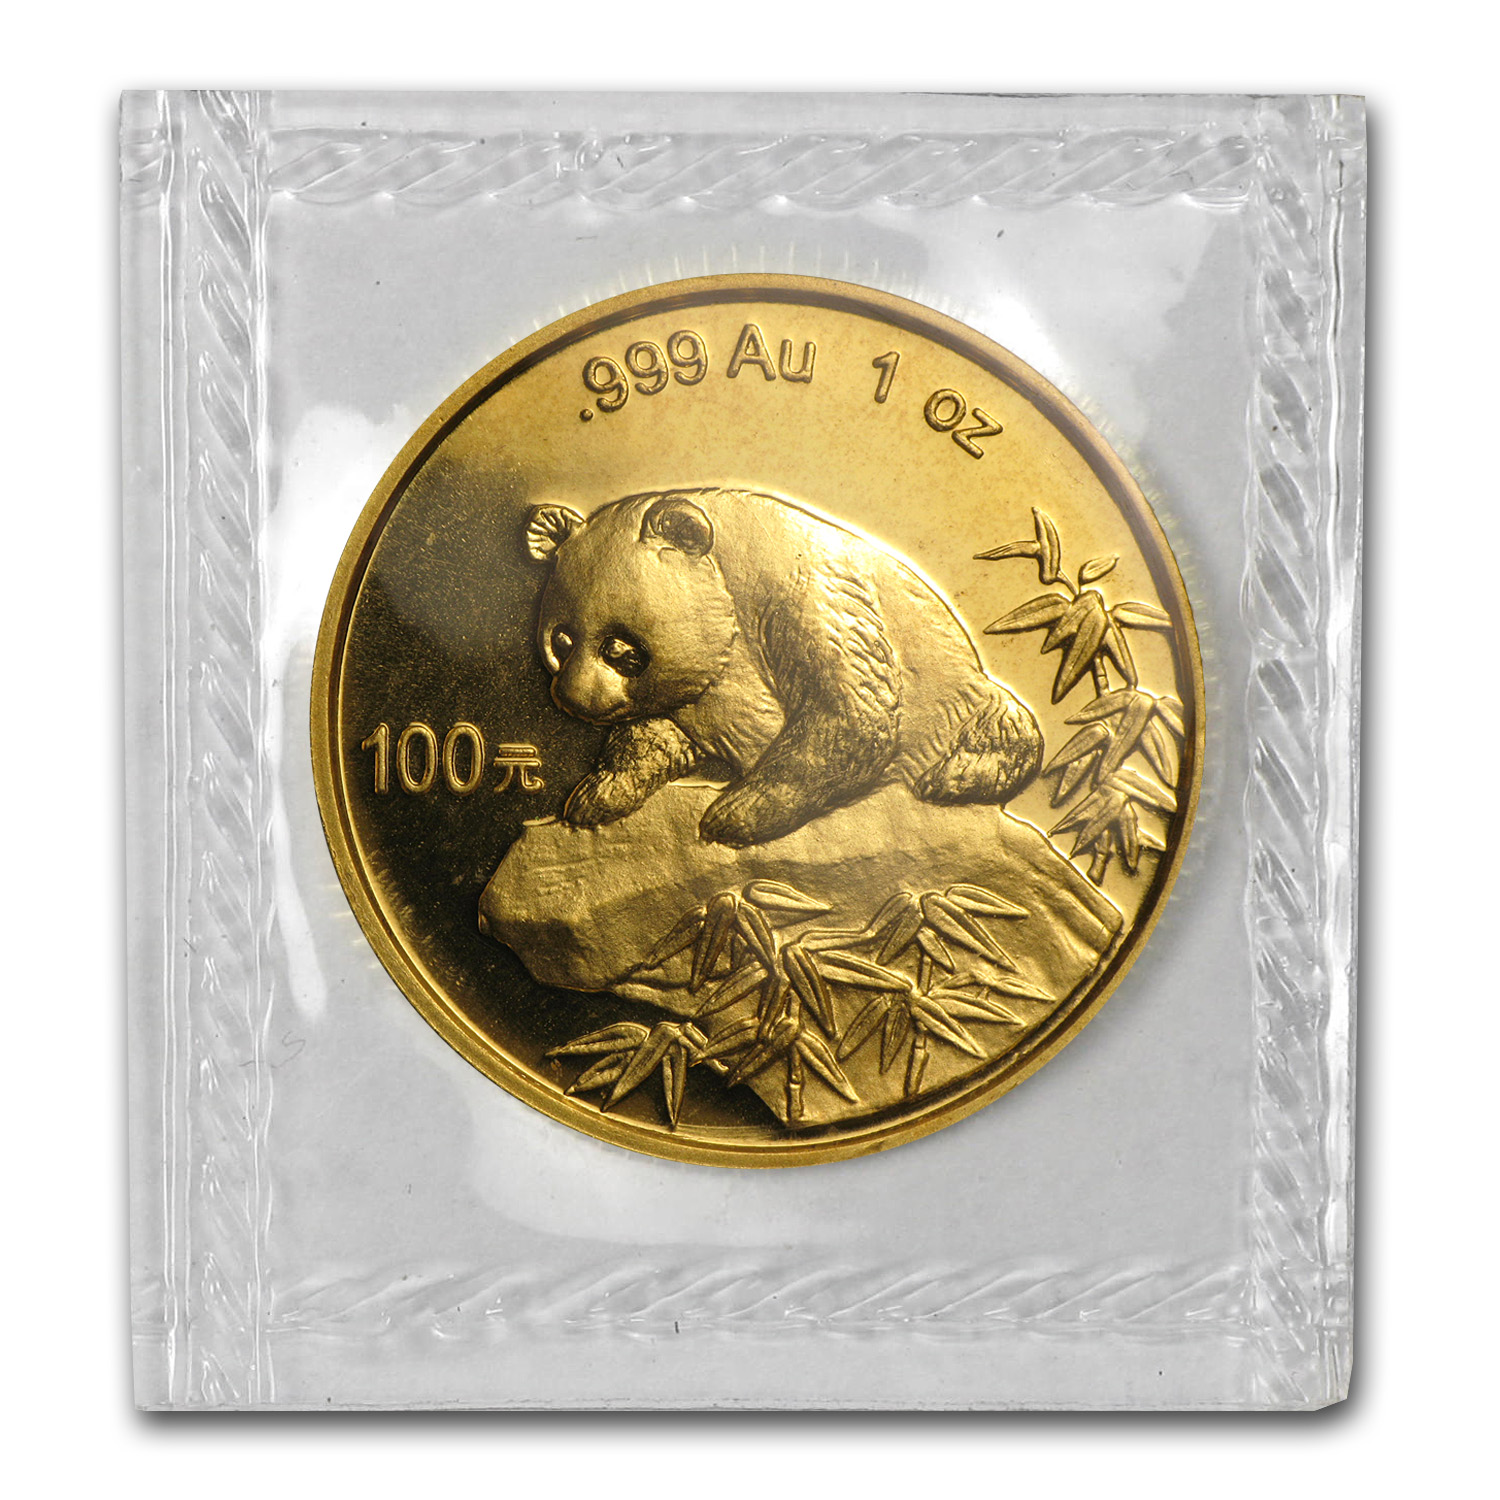 1999 1 oz Gold Chinese Panda - Small Date (Sealed)